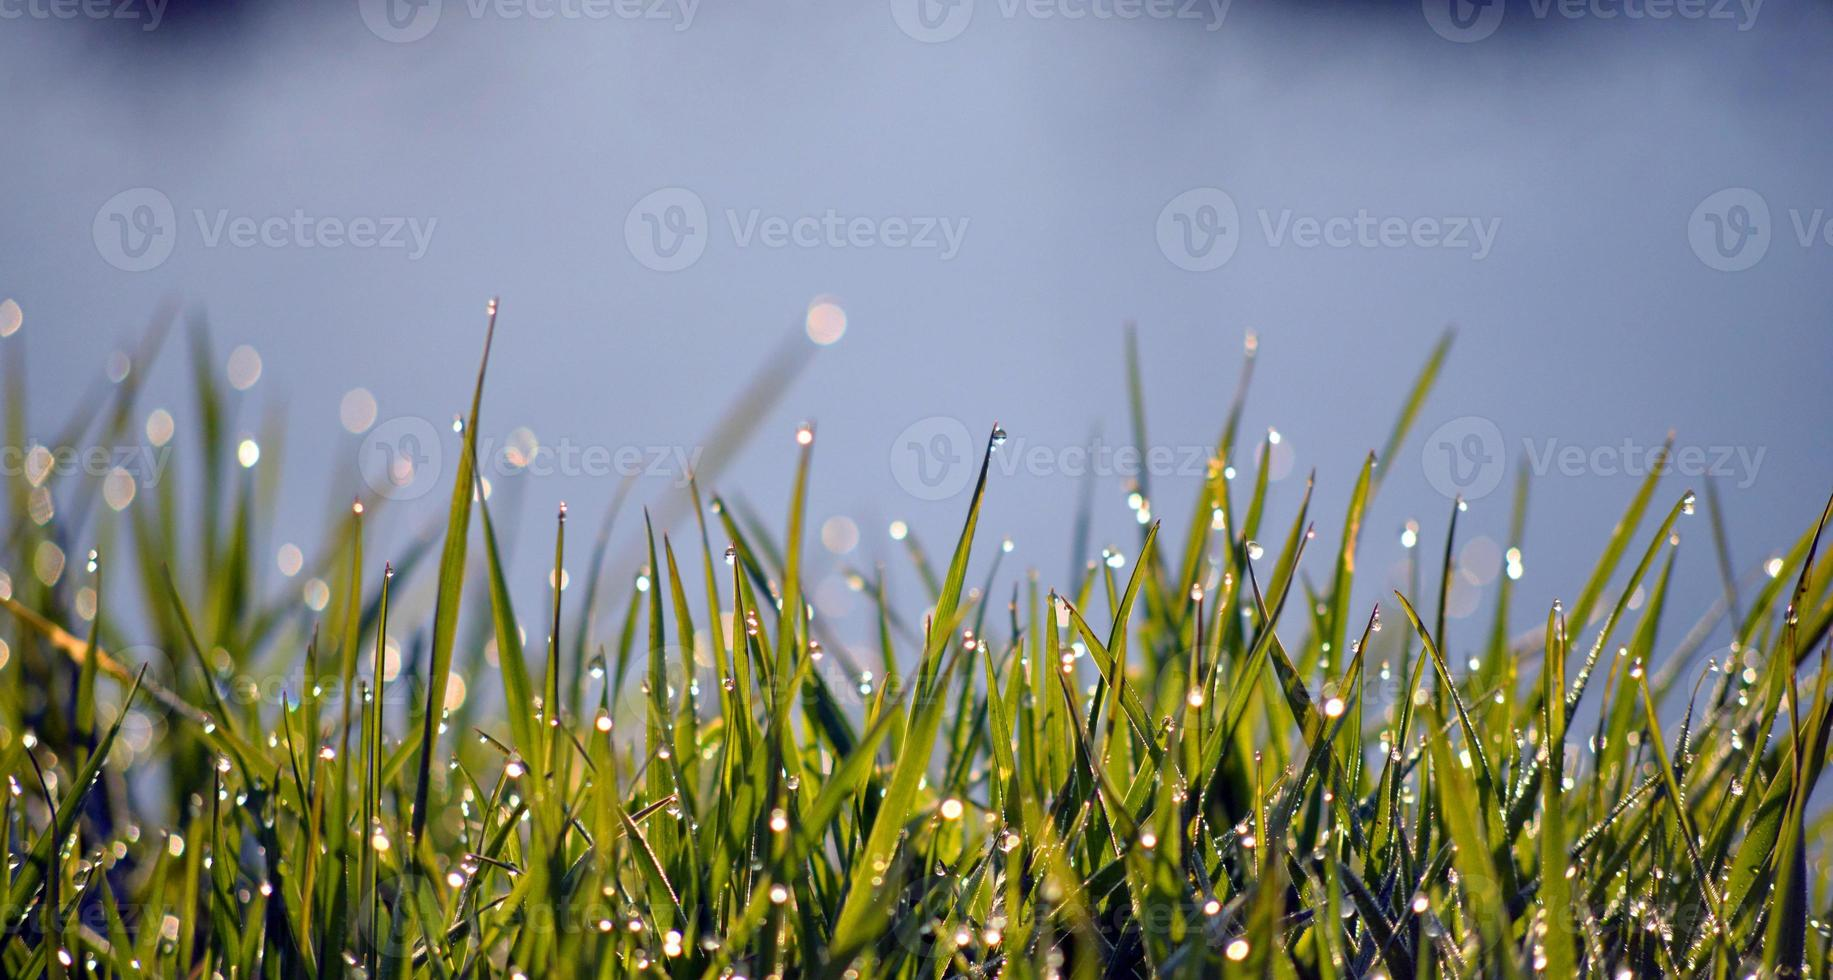 Morning dew on blades of grass photo